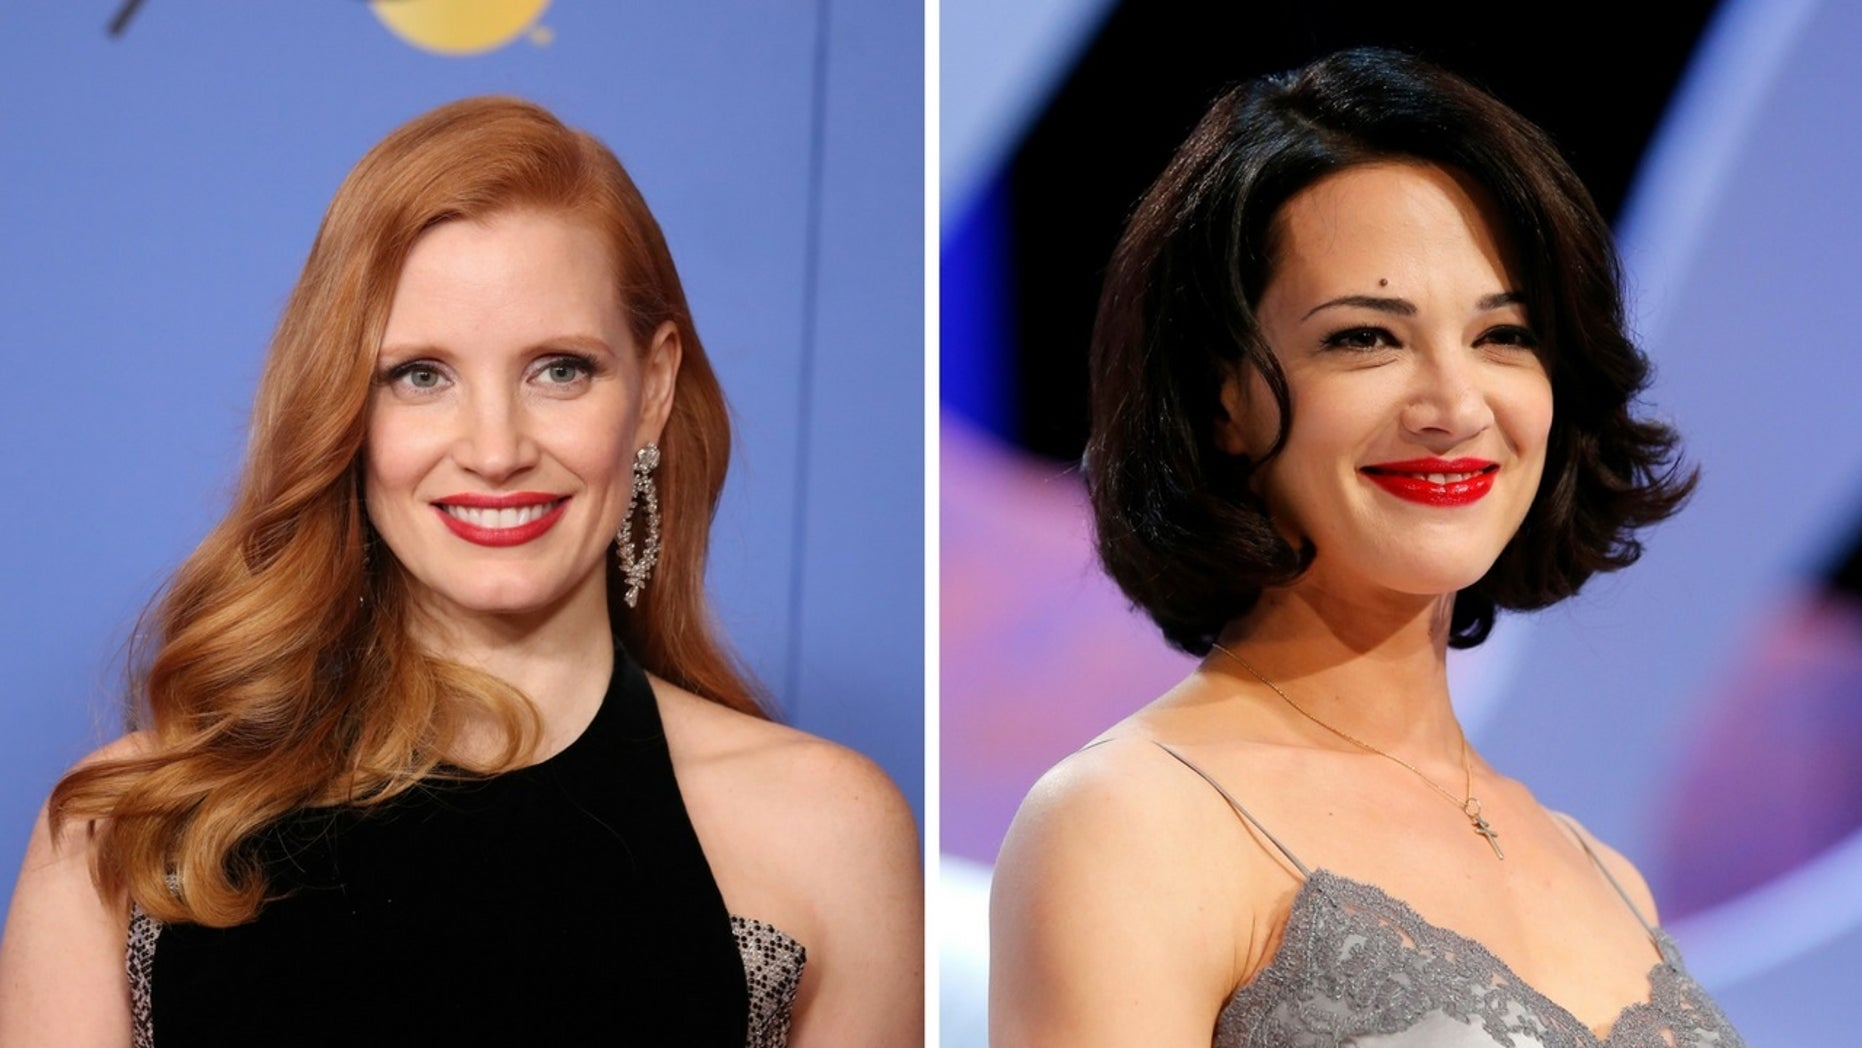 Jessica Chastain defended the #TimesUp movement after Asia Argento criticized it for excluding others.